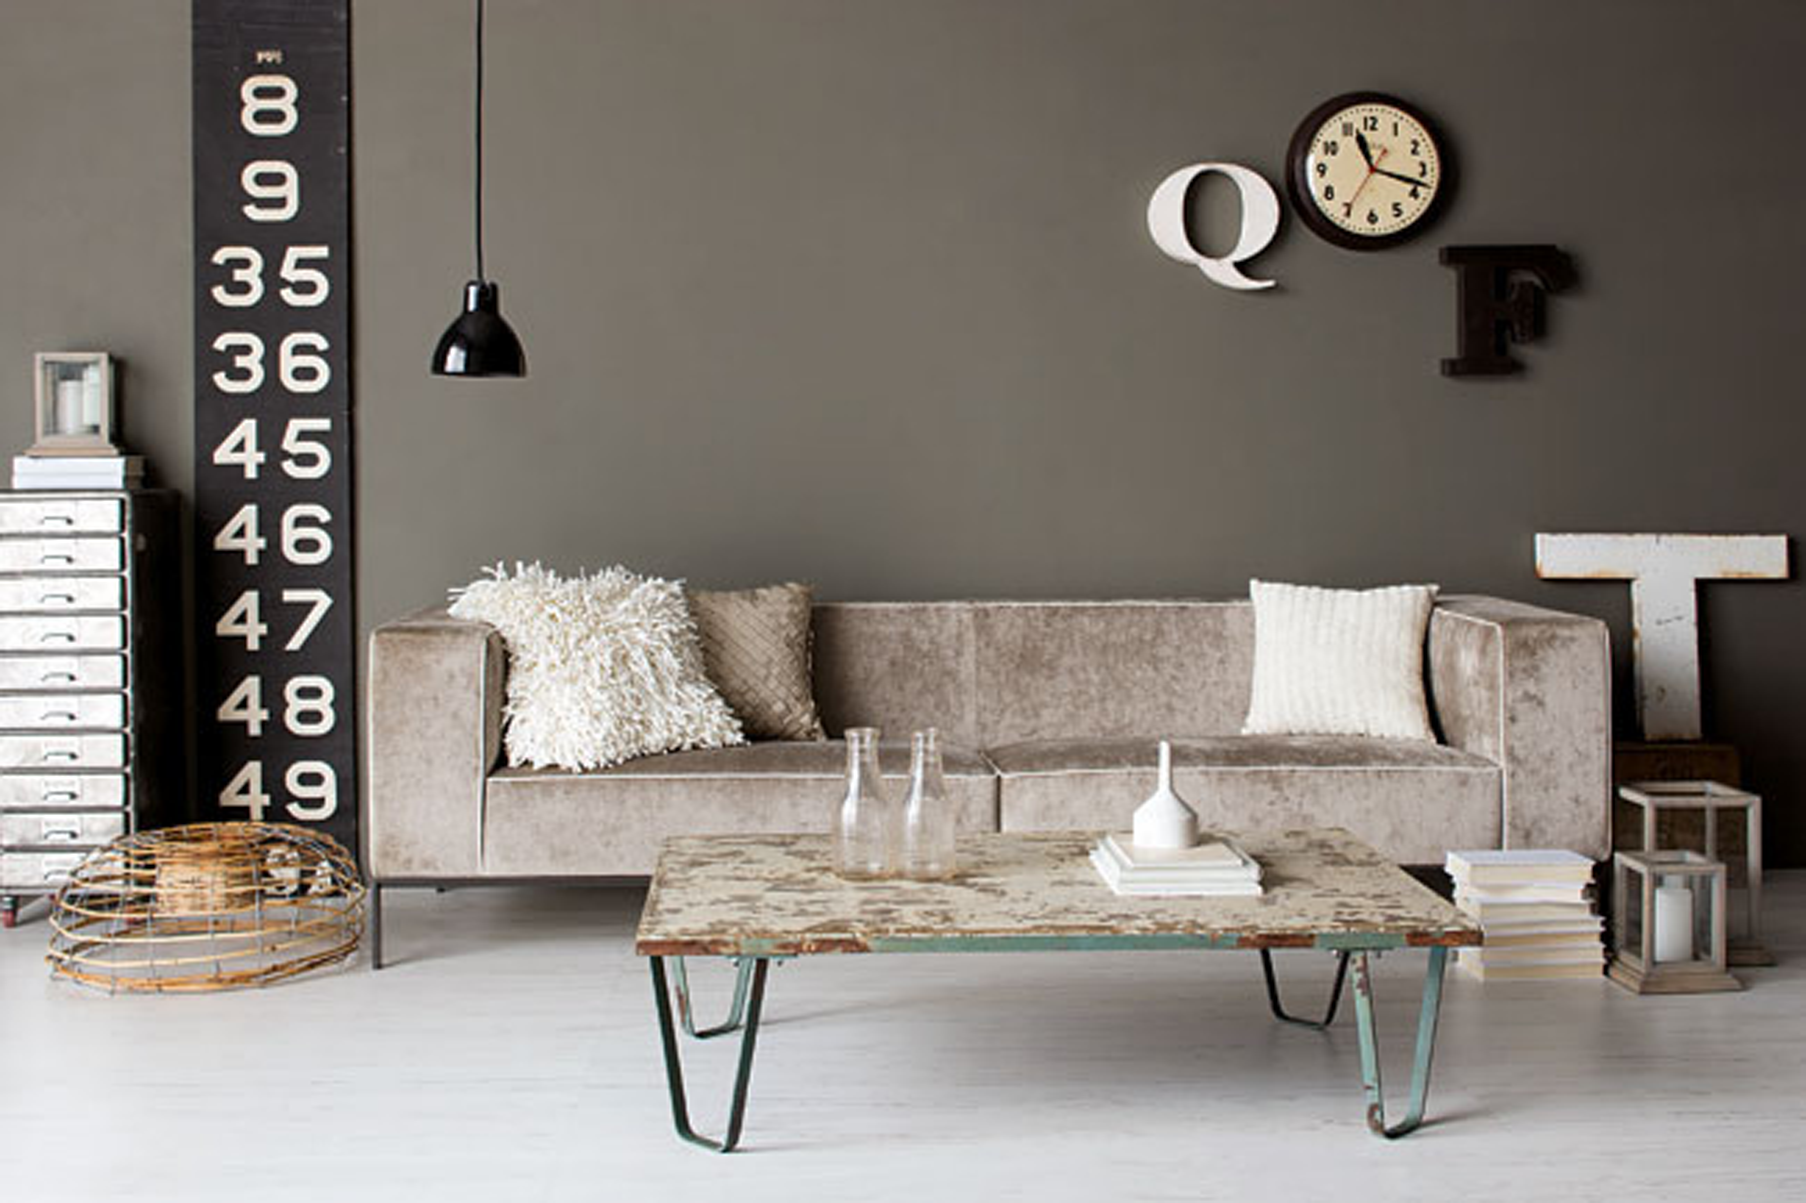 Industrial Chic image Square antique grey lanterns, 'Uki' sofa, distressed  antique coffee table and letters 'Q' and 'F' Orson & Blake